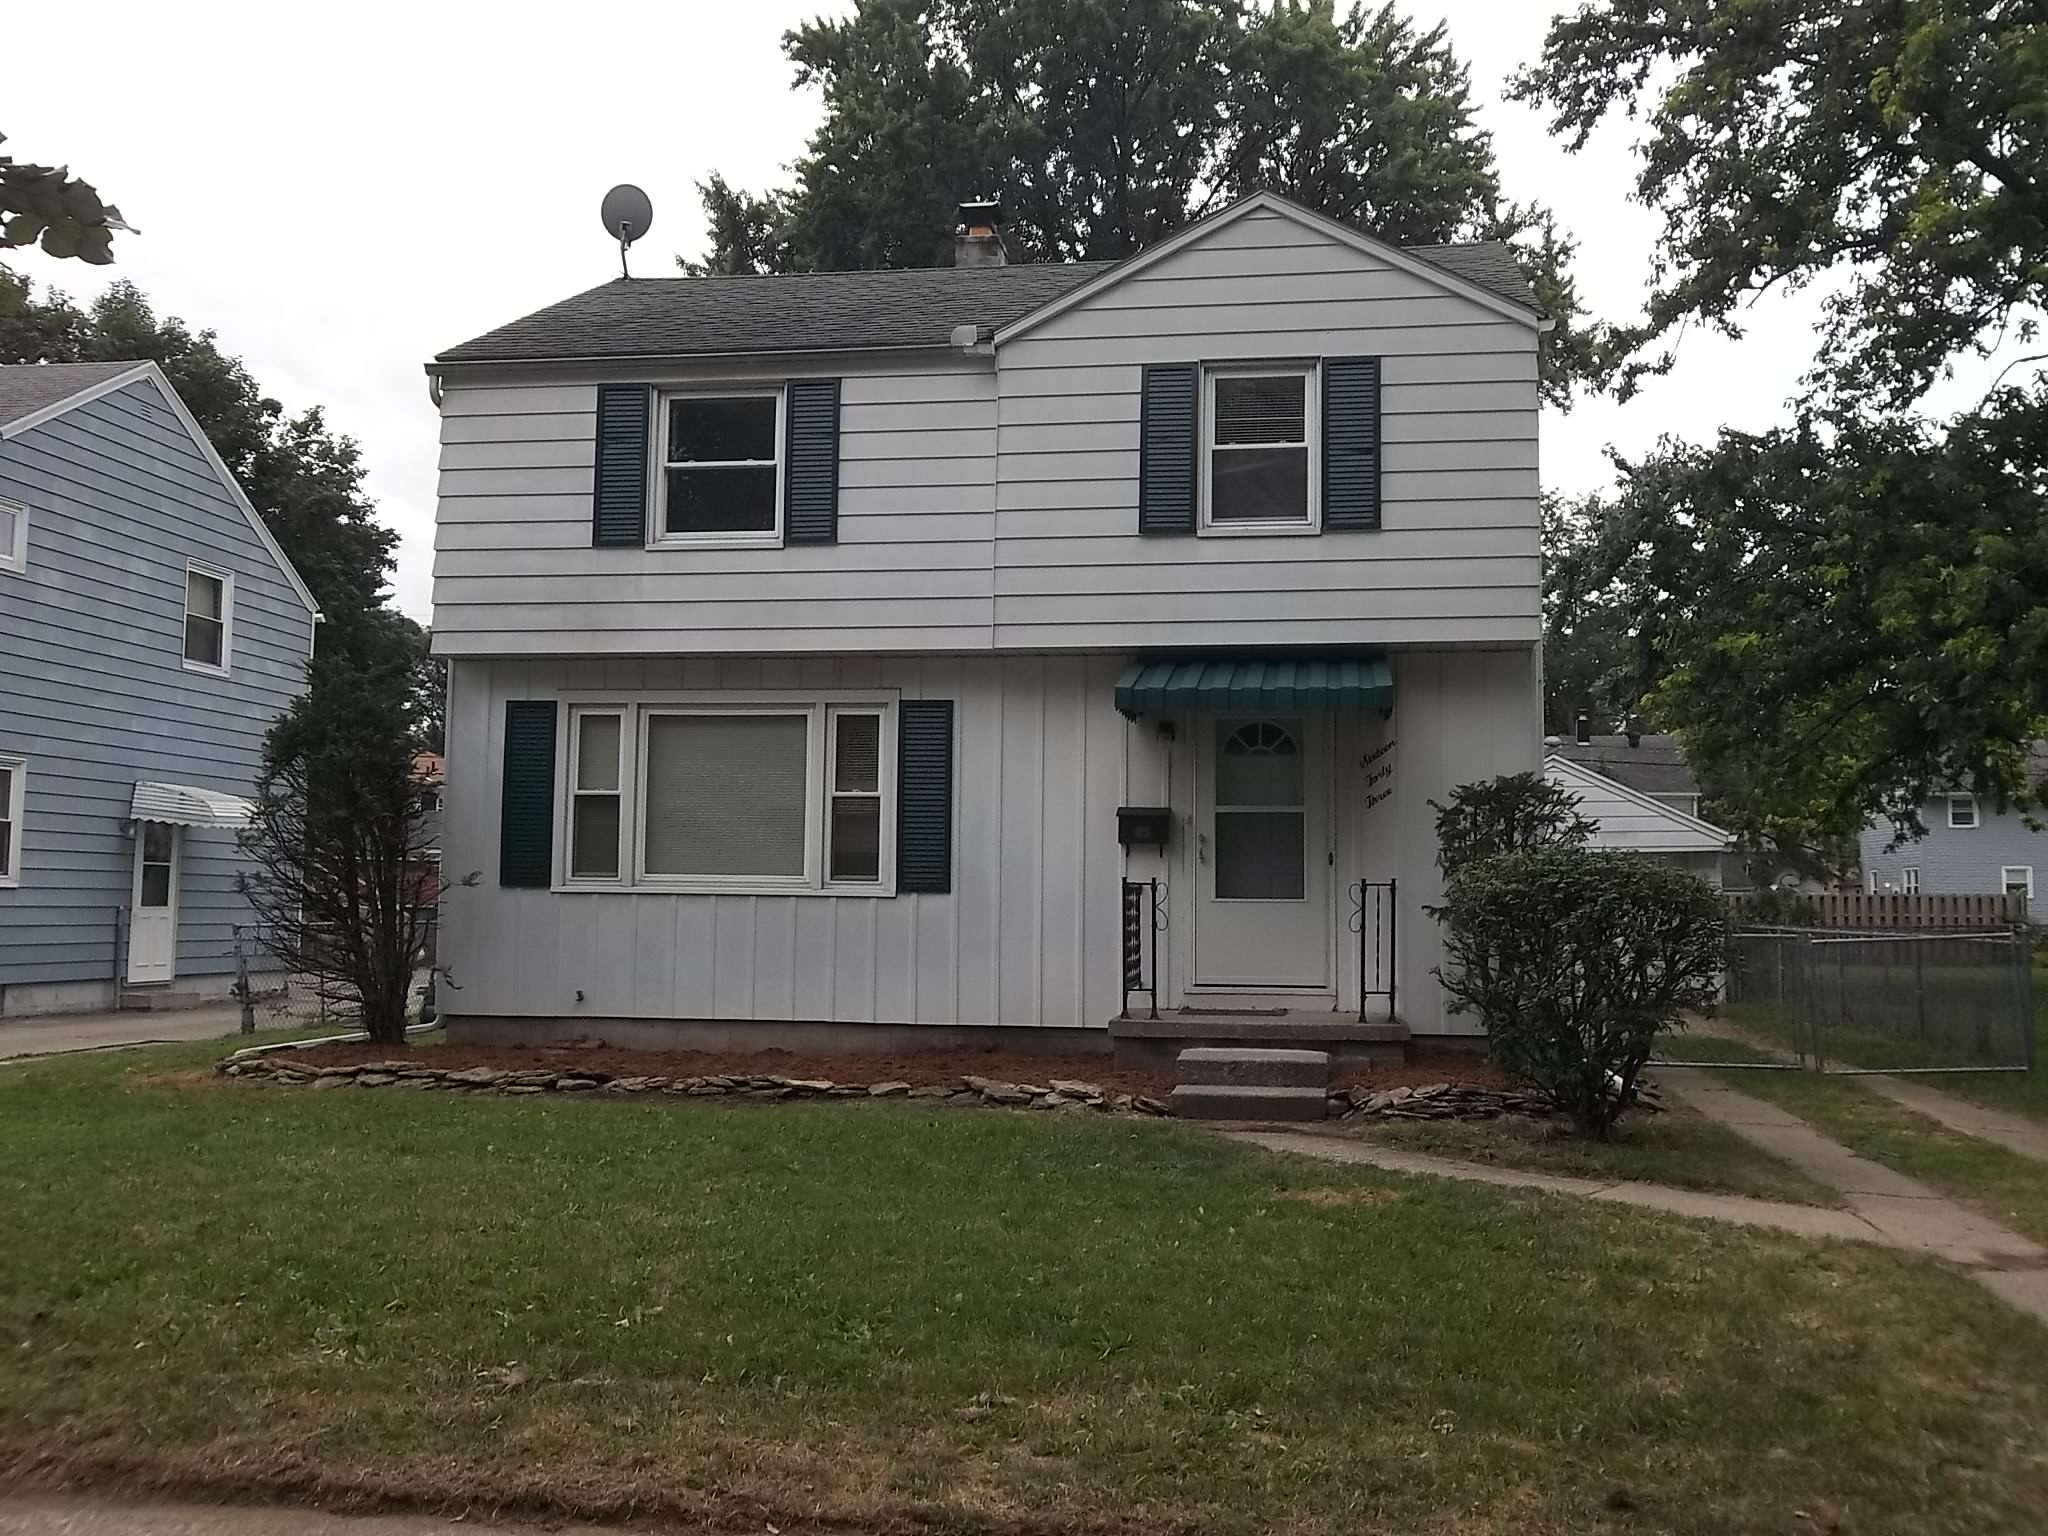 3 bed 1 1/2 bath west side home